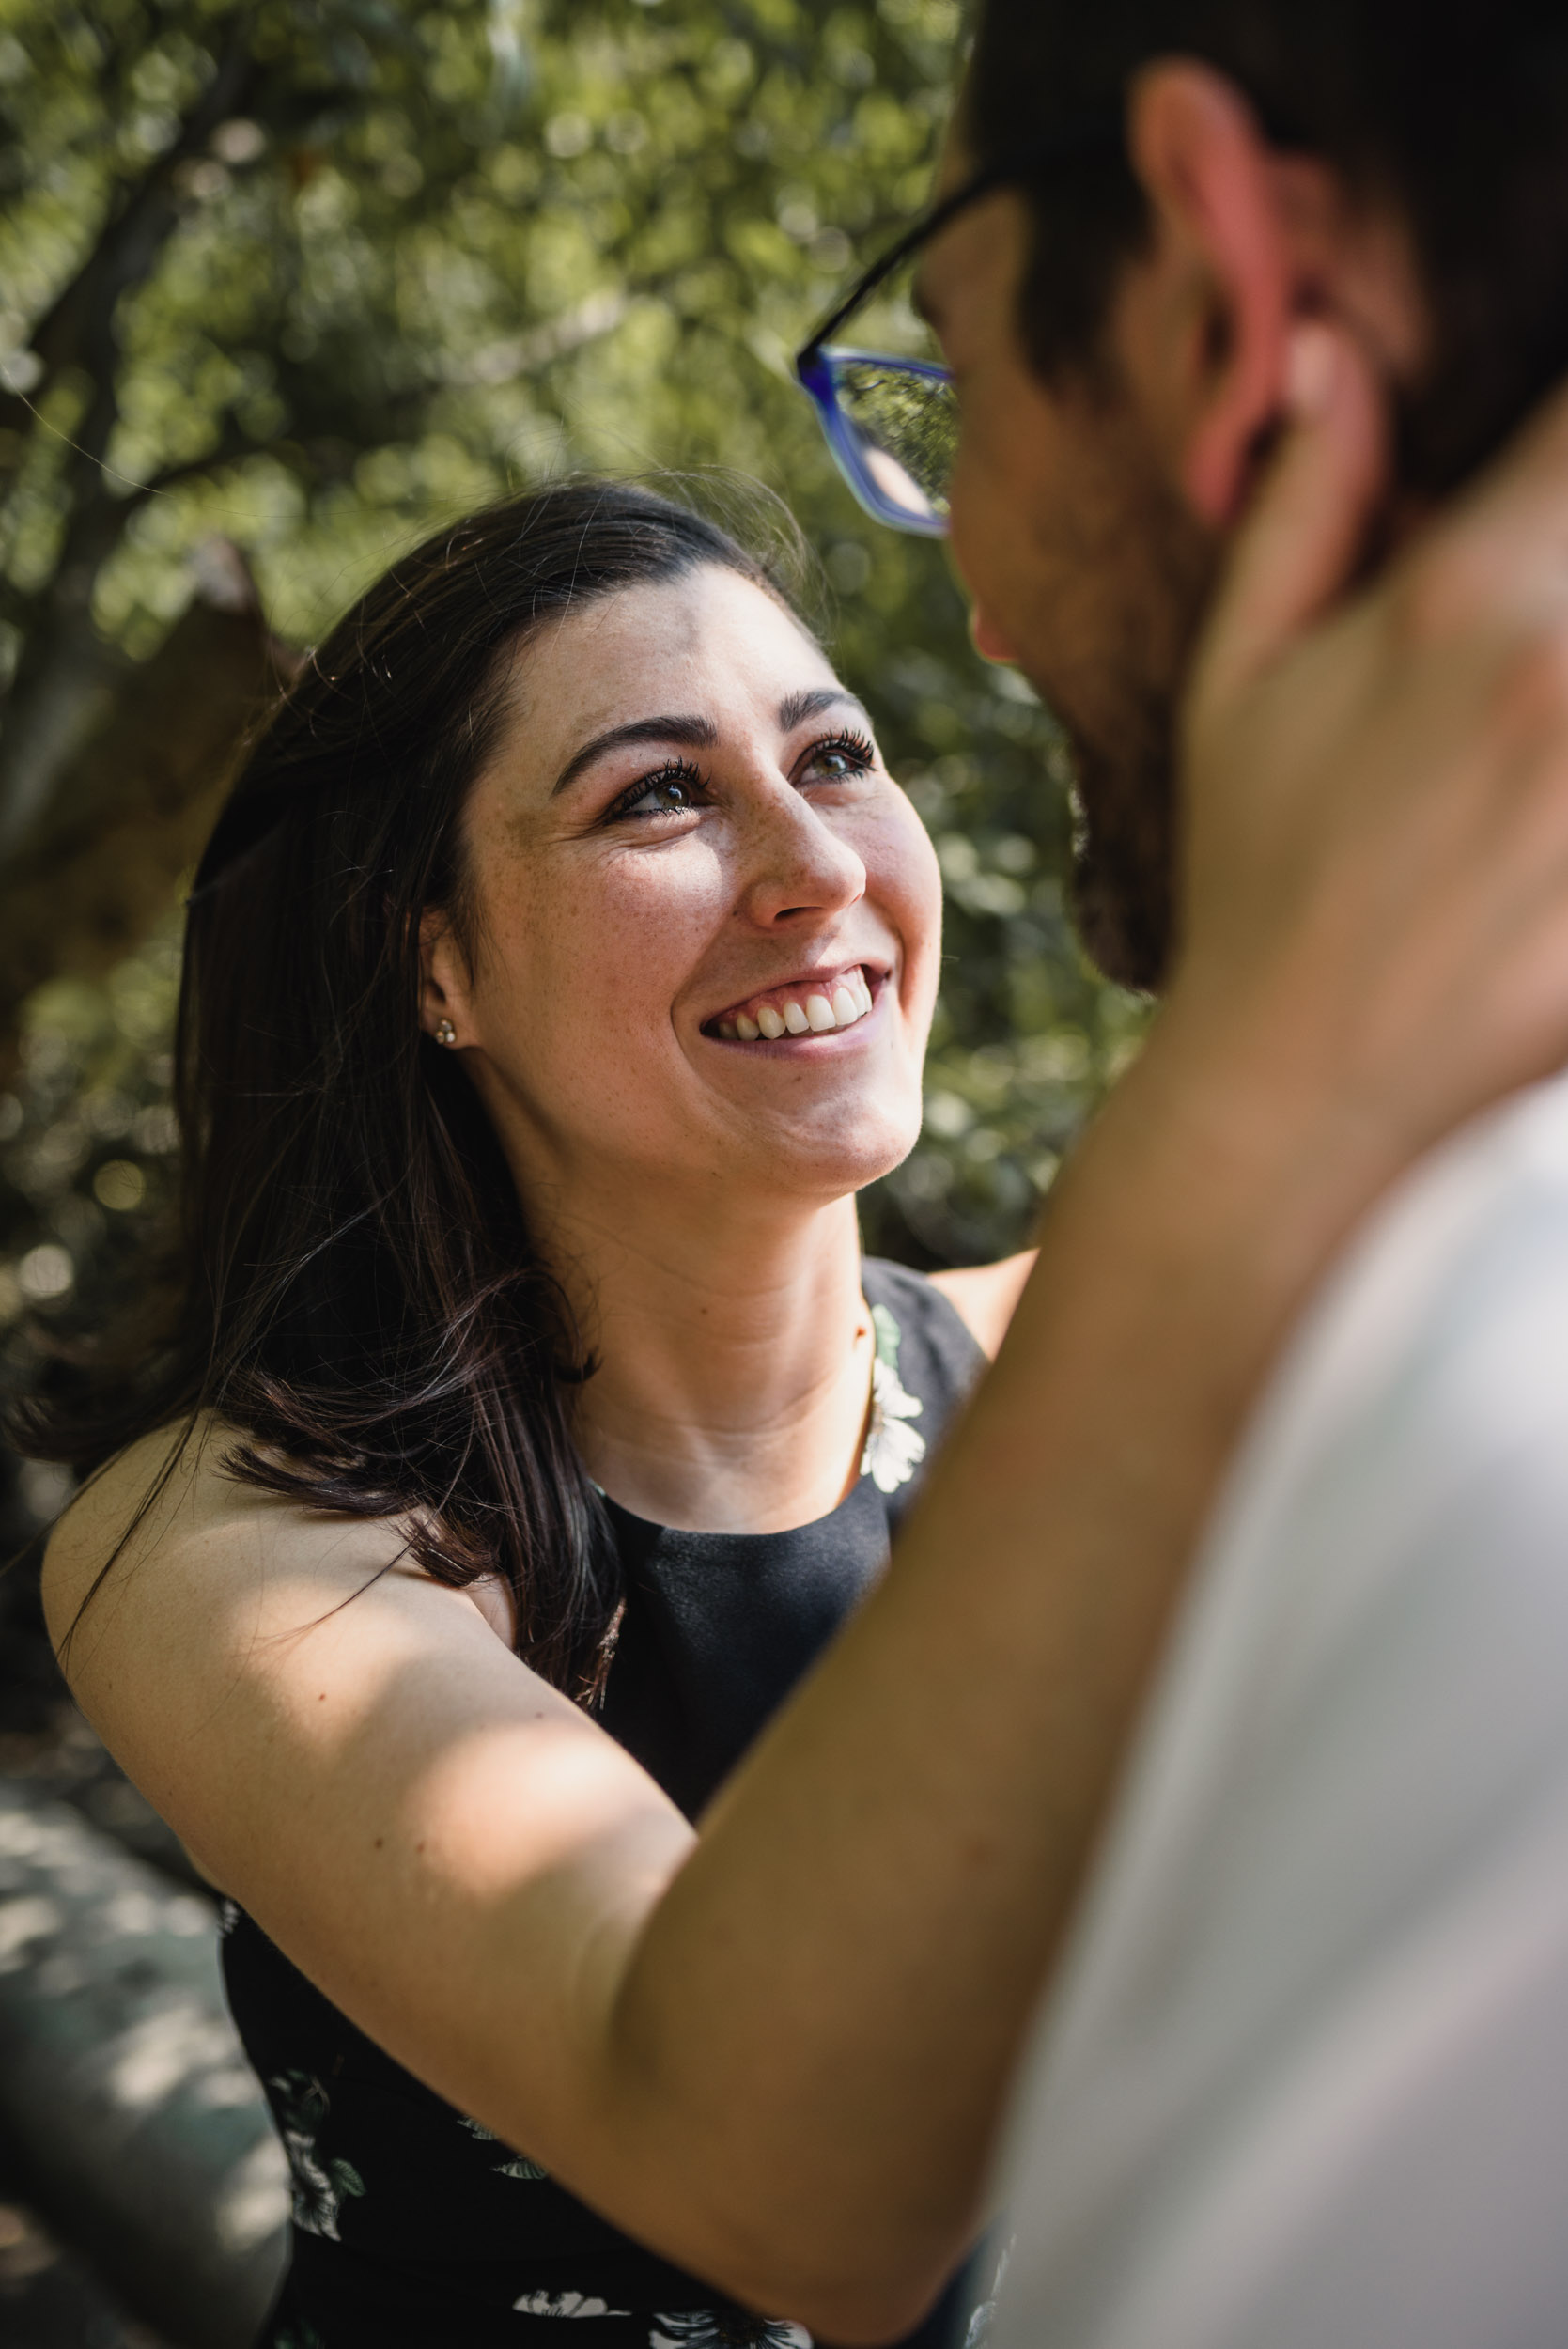 Smiling woman embracing fiancee